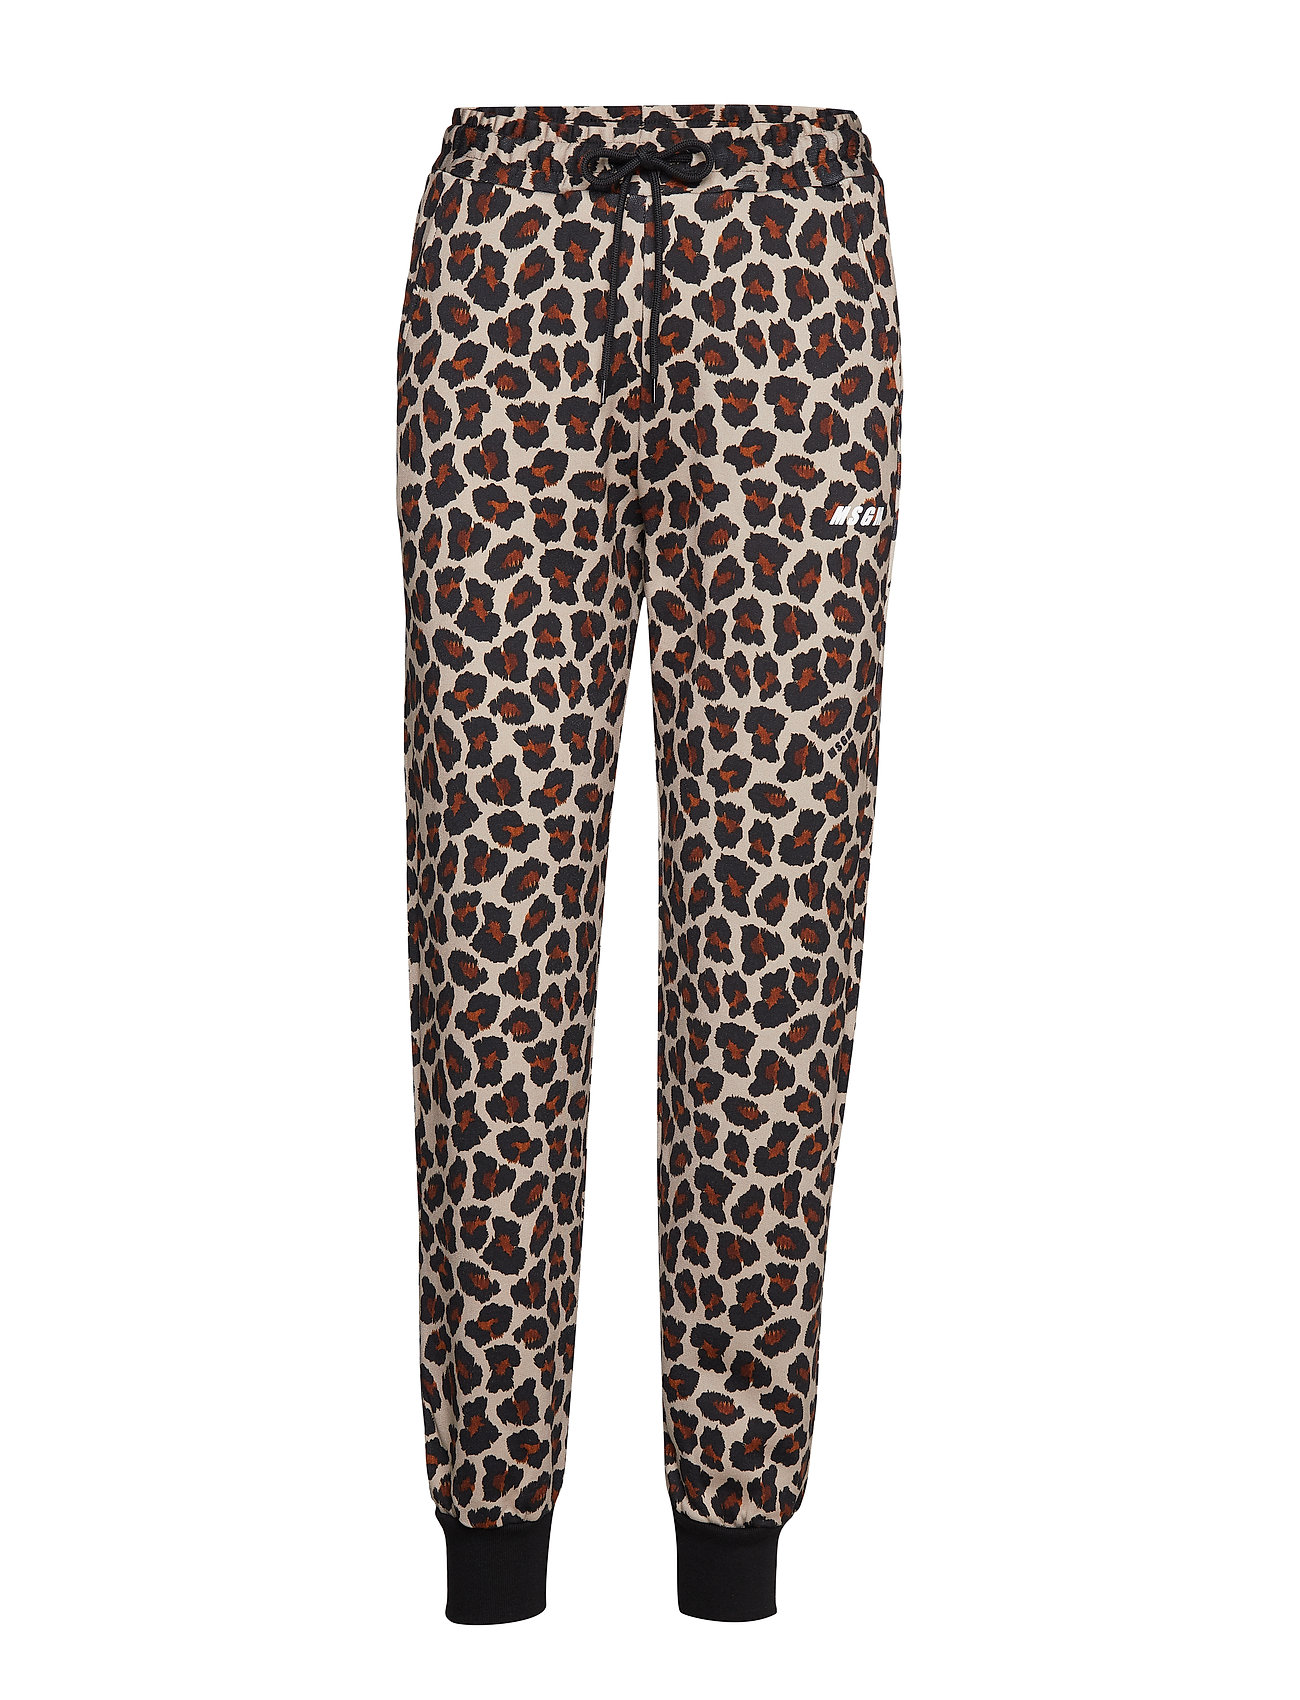 Image of Animalier Printed Cotton Fleece Pants Casual Bukser Beige MSGM (3203601739)